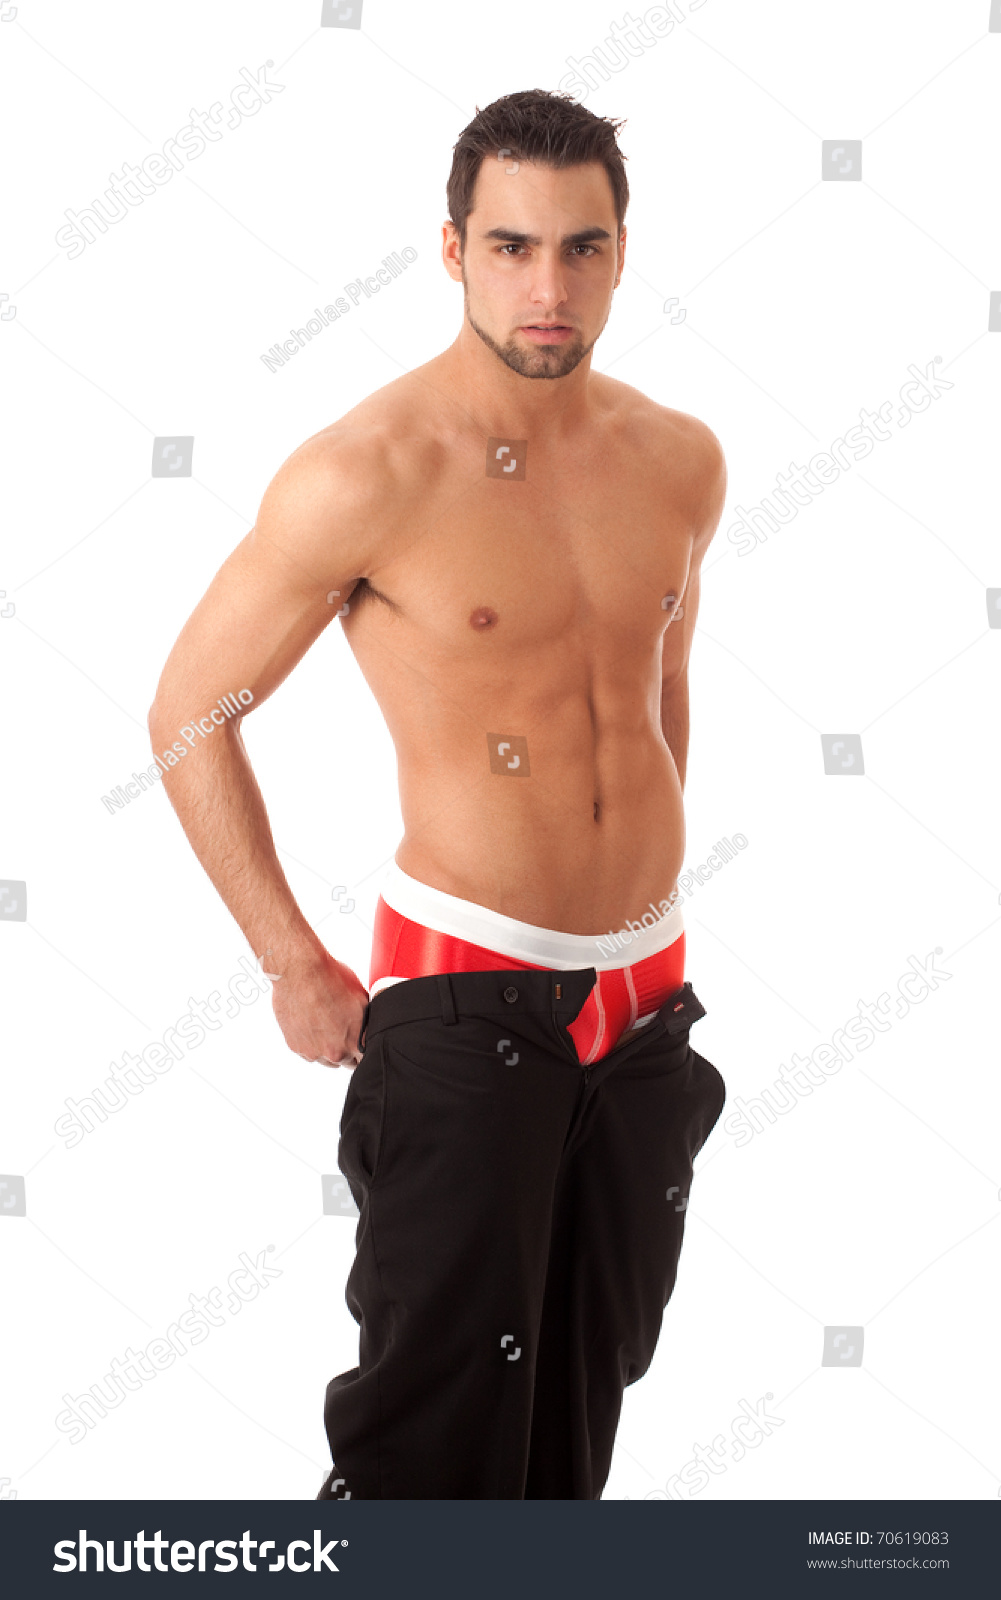 unzipped pants stock photo 70619083